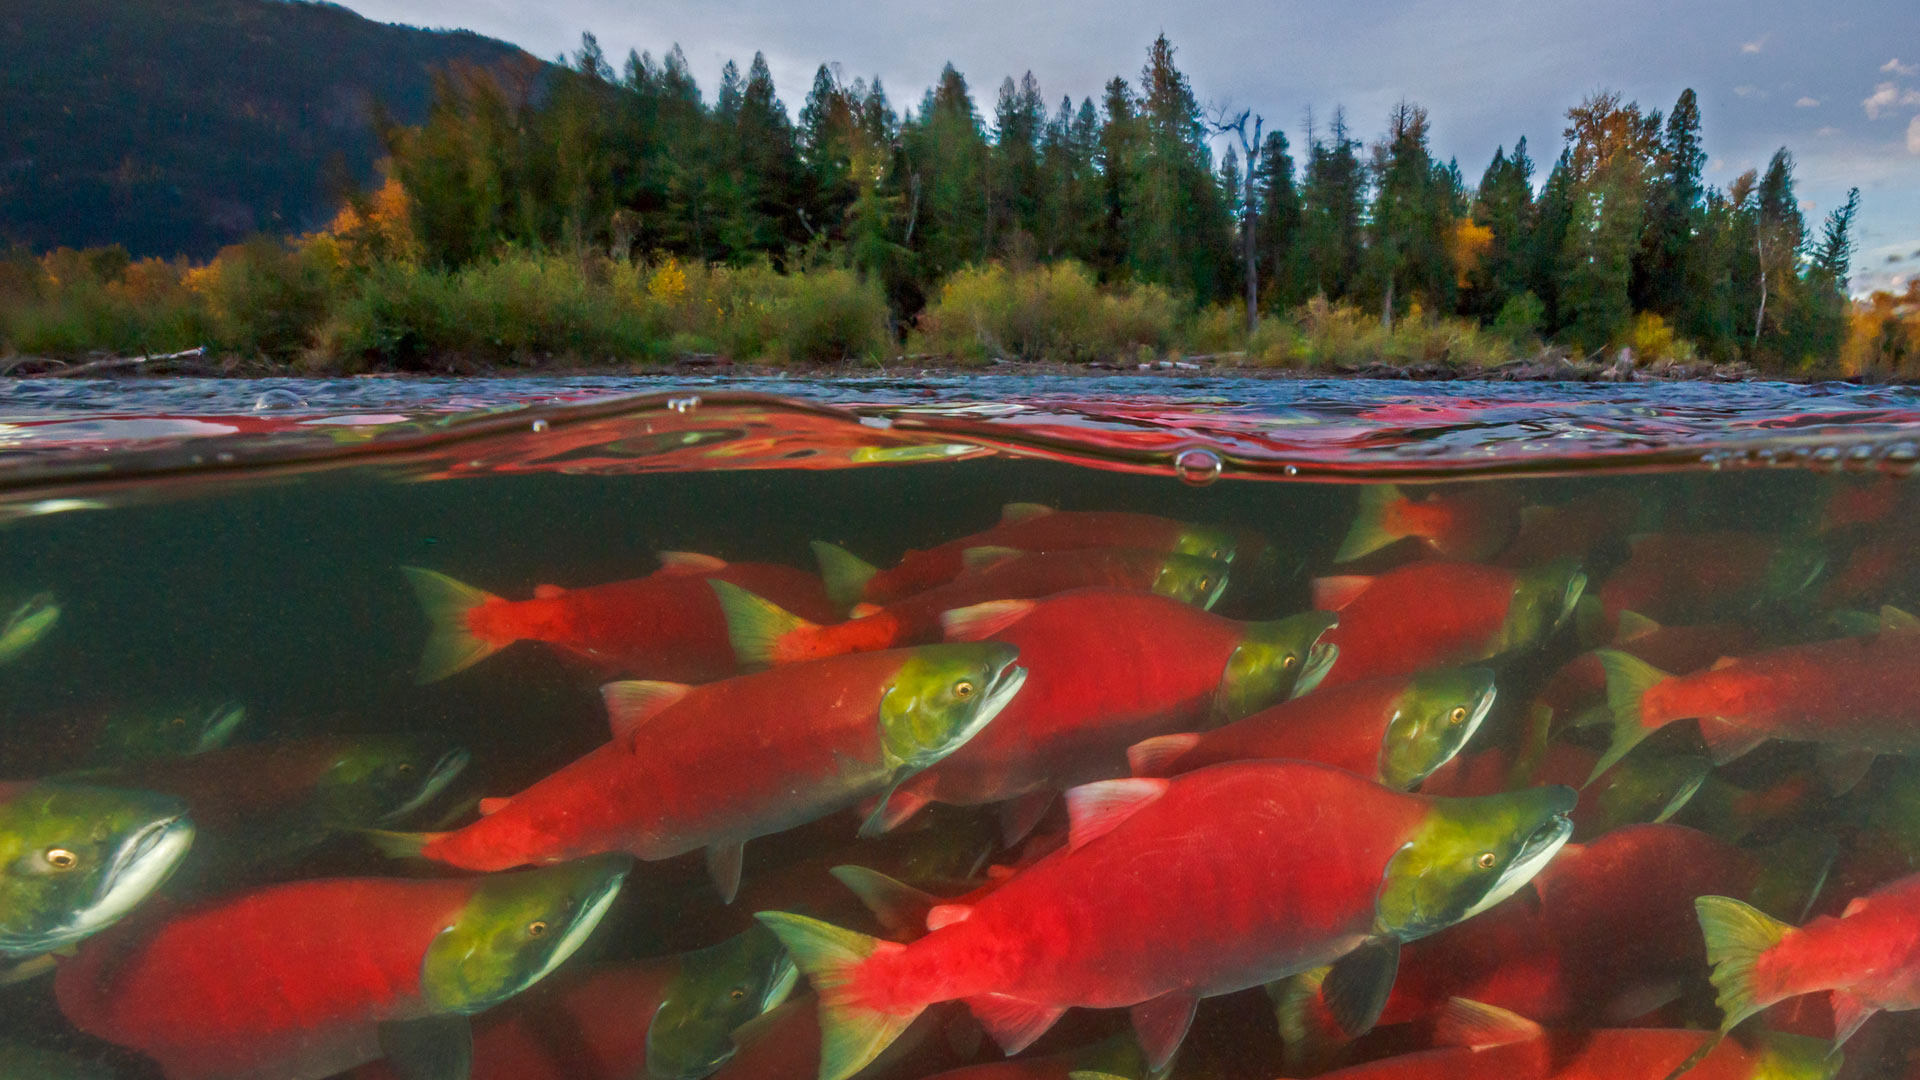 Sockeye salmon spawn in the Adams River in British Columbia, Canada (© Yva Momatiuk and John Eastcott/Minden Pictures)